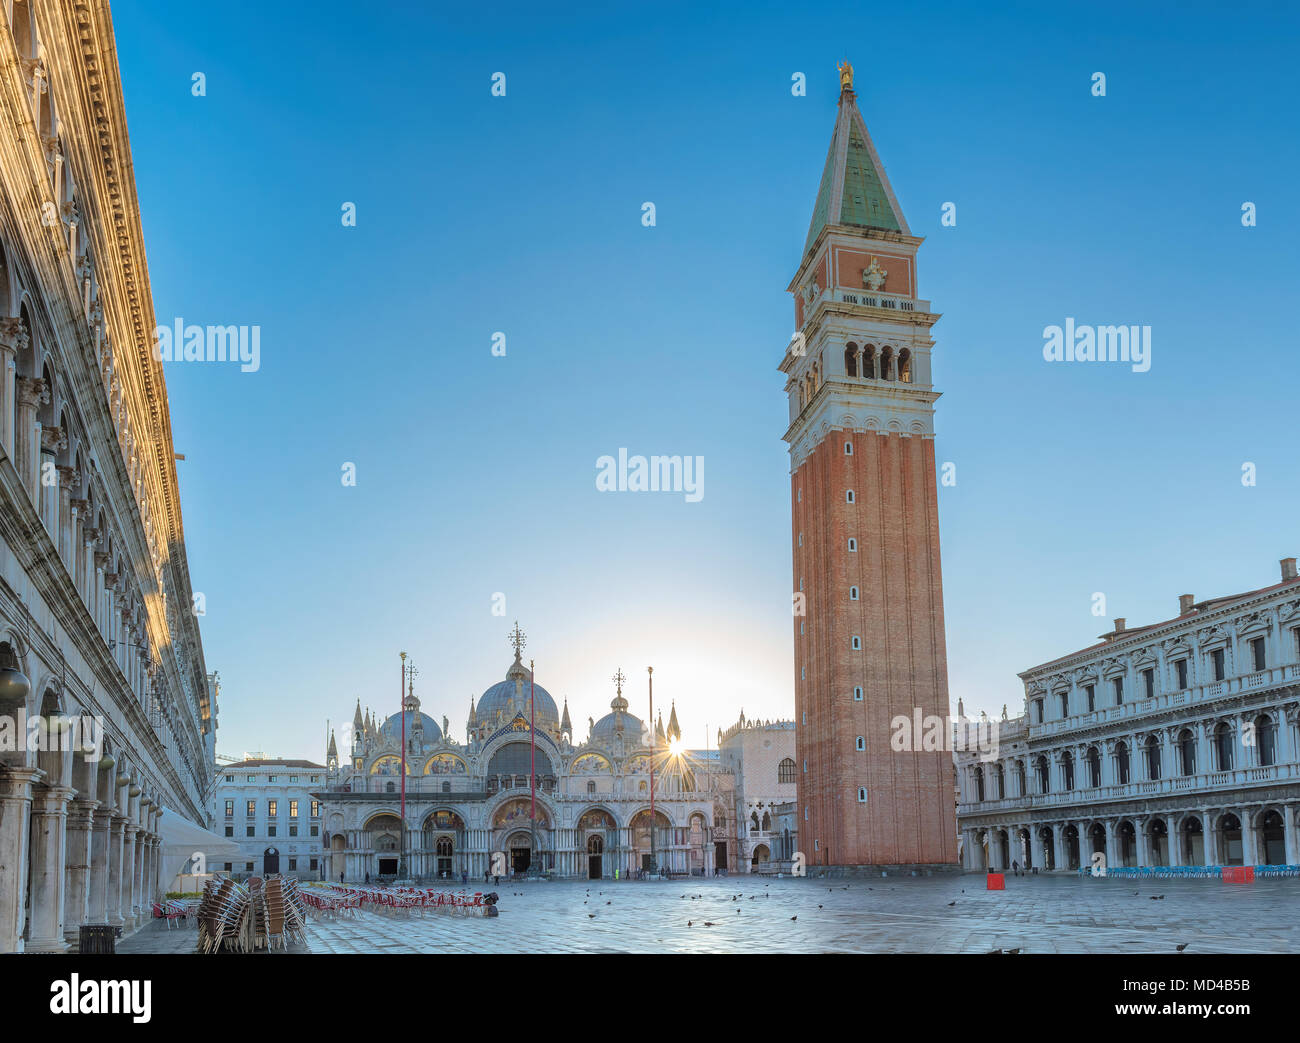 San Marco square at sunrise, Venice Italy. - Stock Image